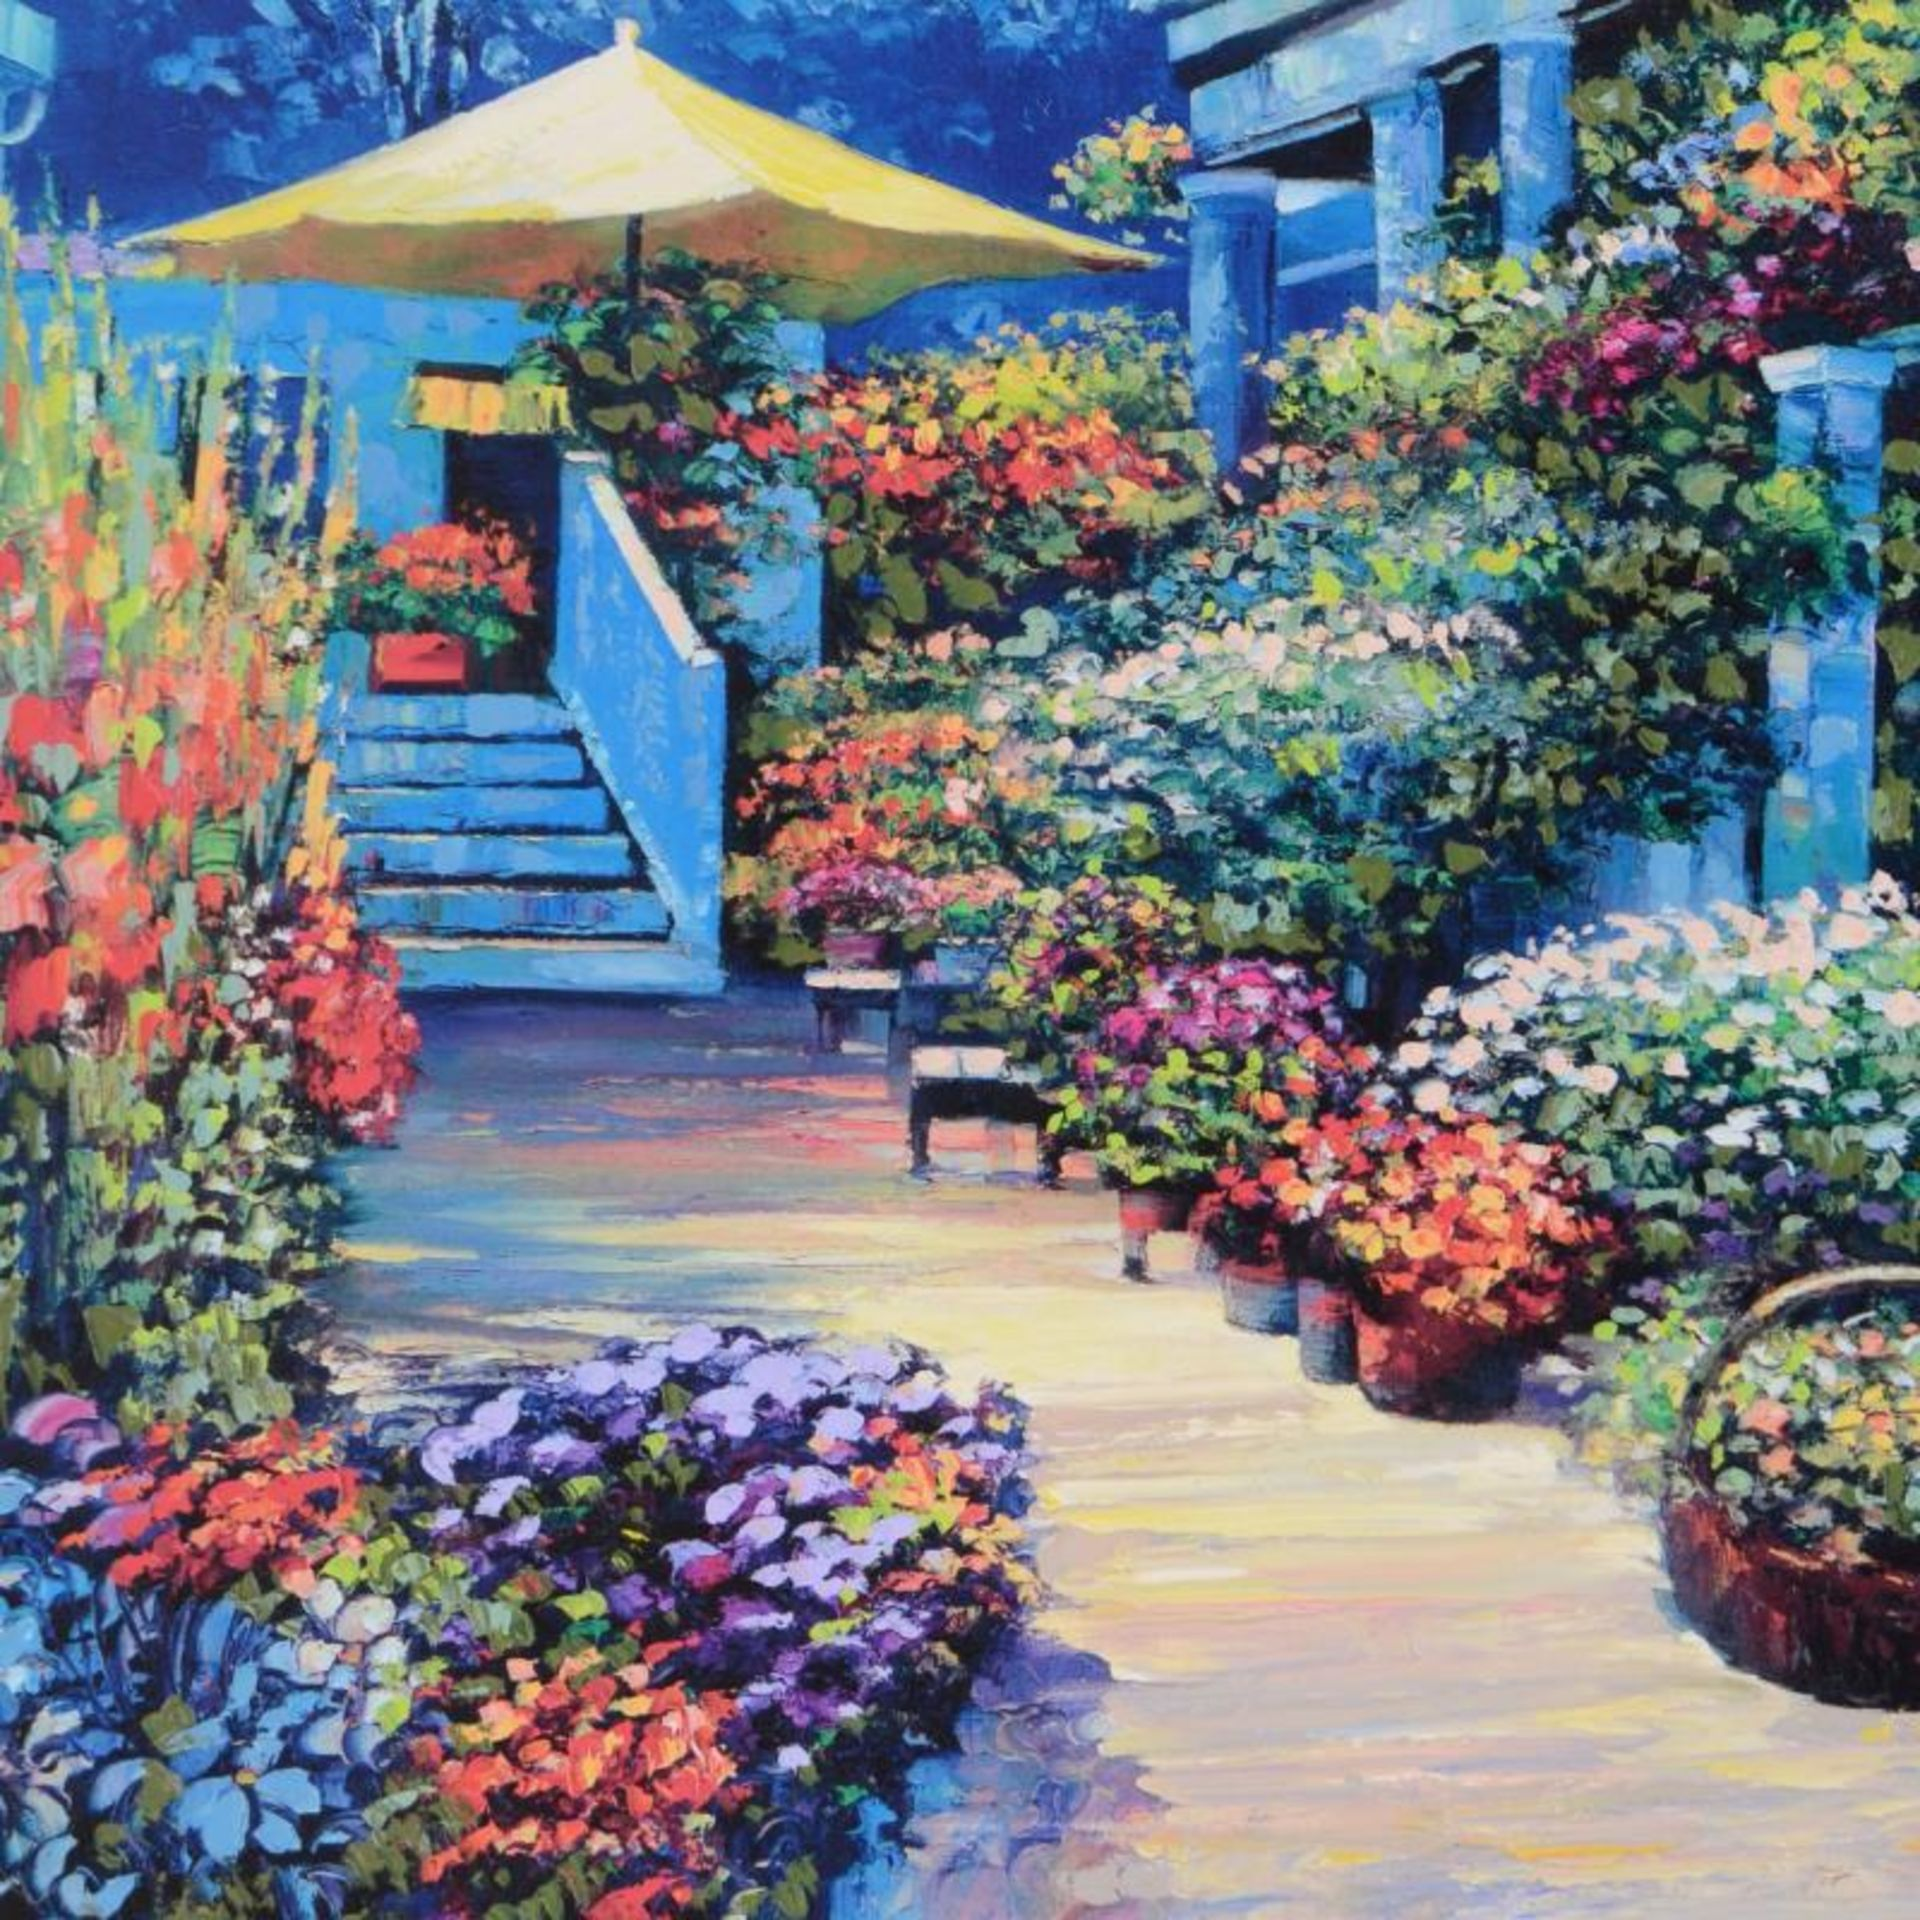 """Howard Behrens (1933-2014), """"Nantucket Flower Market"""" Limited Edition on Canvas, - Image 2 of 2"""